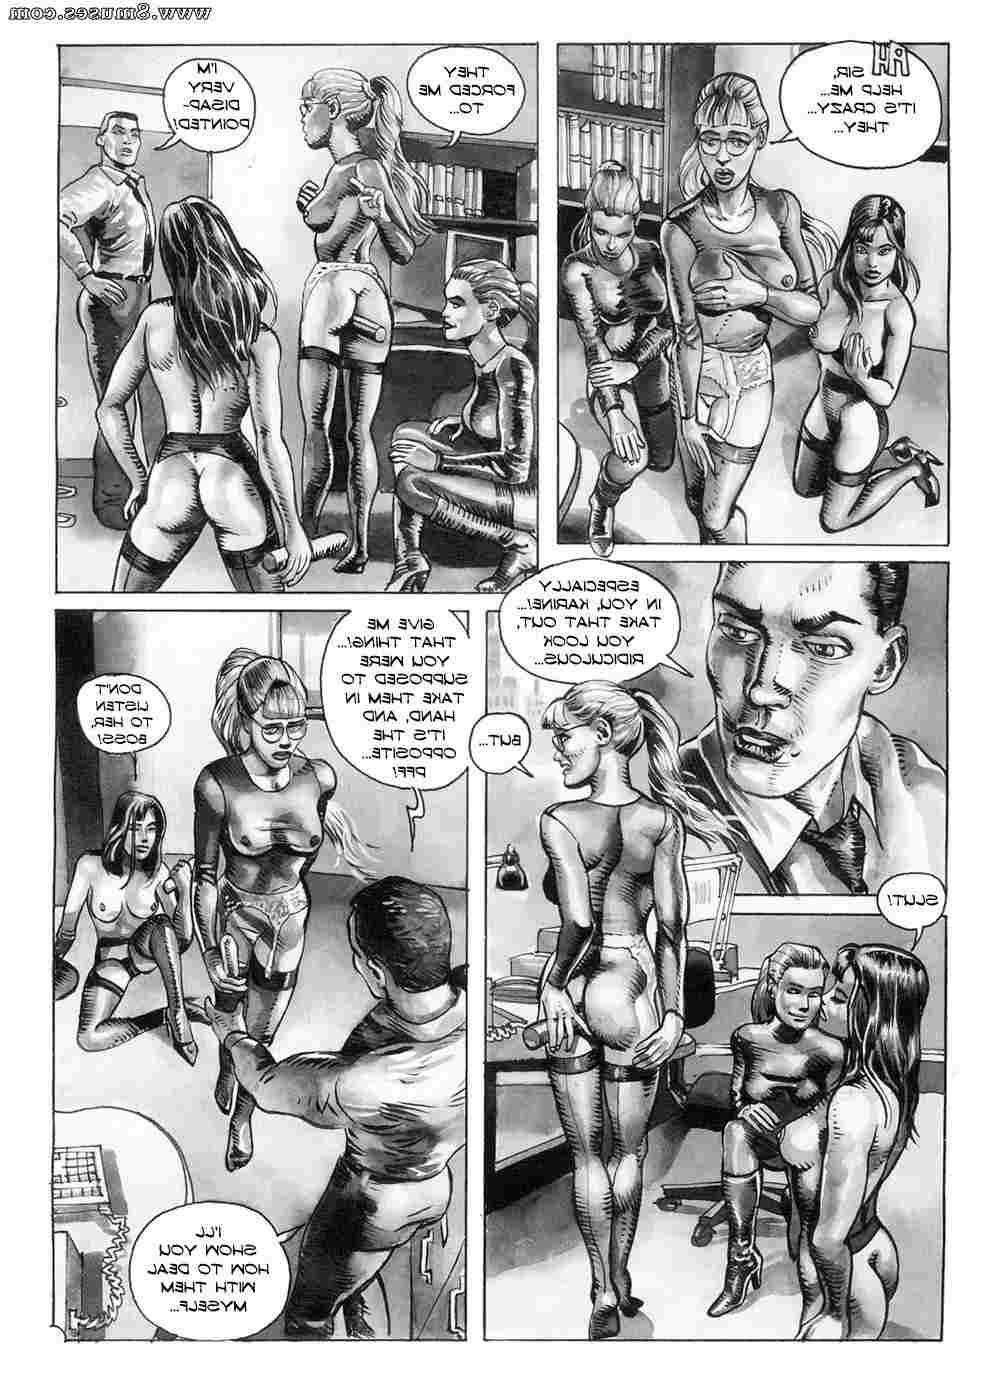 Bruno-Coq-Comics/The-Secretary The_Secretary__8muses_-_Sex_and_Porn_Comics_11.jpg